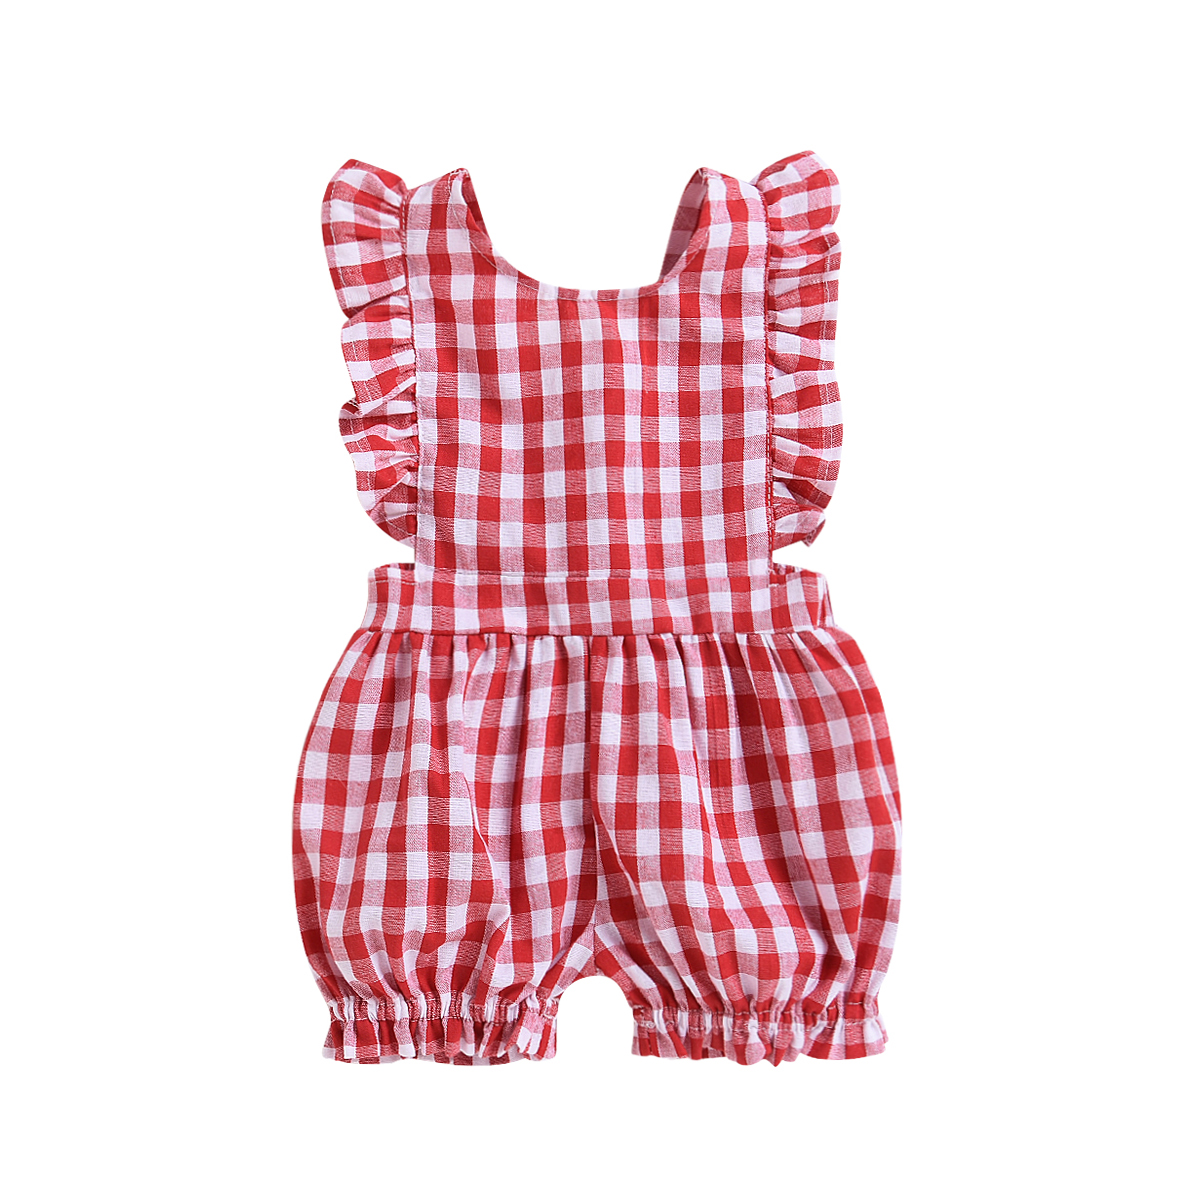 Pudcoco 0-24M Newbron Baby Girls Red Plaid   Romper   Summer Sleeveless Ruffles Infant Girls Jumpsuit Cotton Baby Girls Clothes